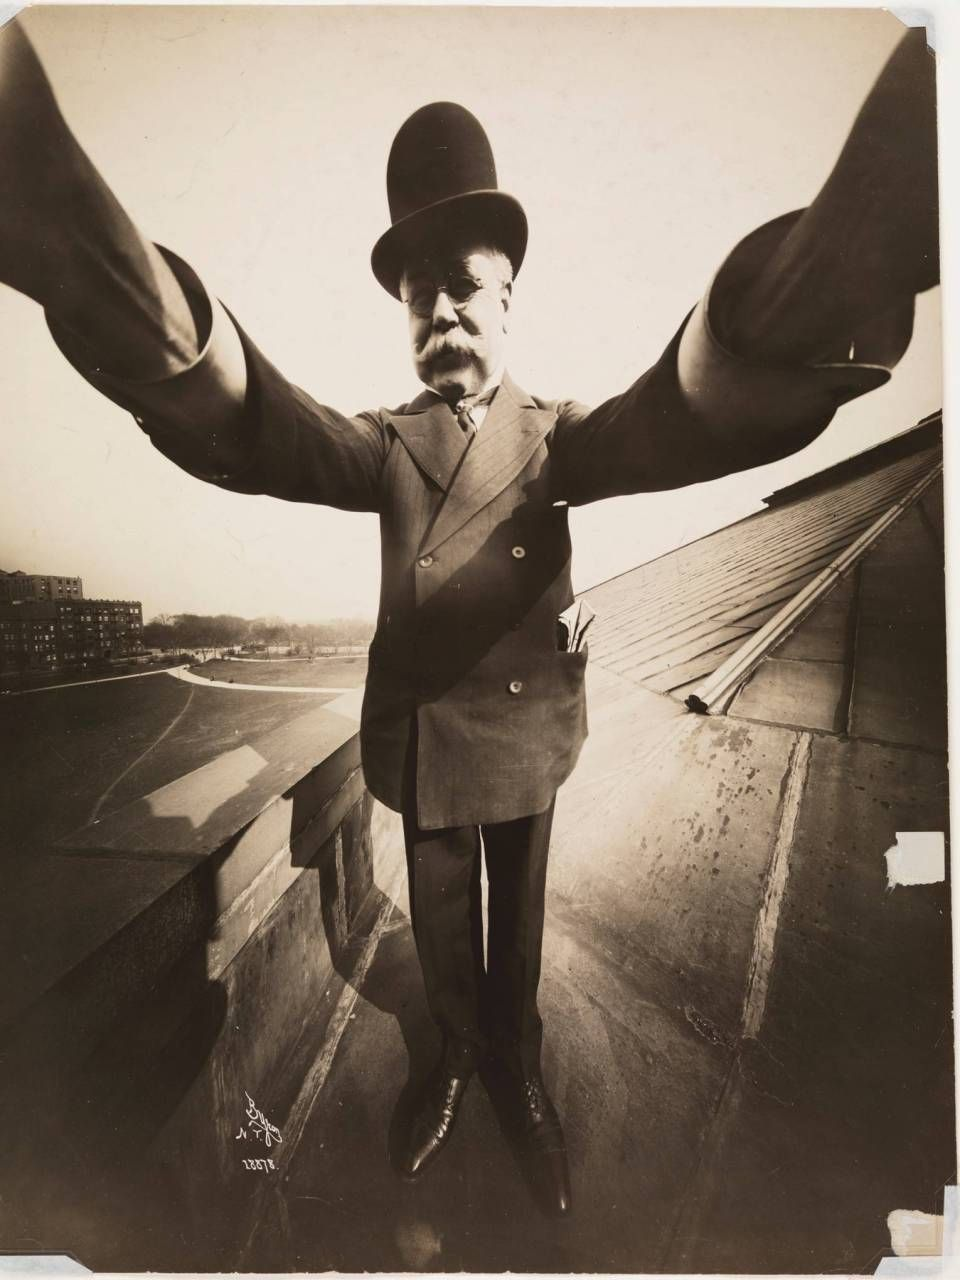 The First Selfie Ever. Selfies On Other Planets. These Pics Are All Historic - ALLDAY